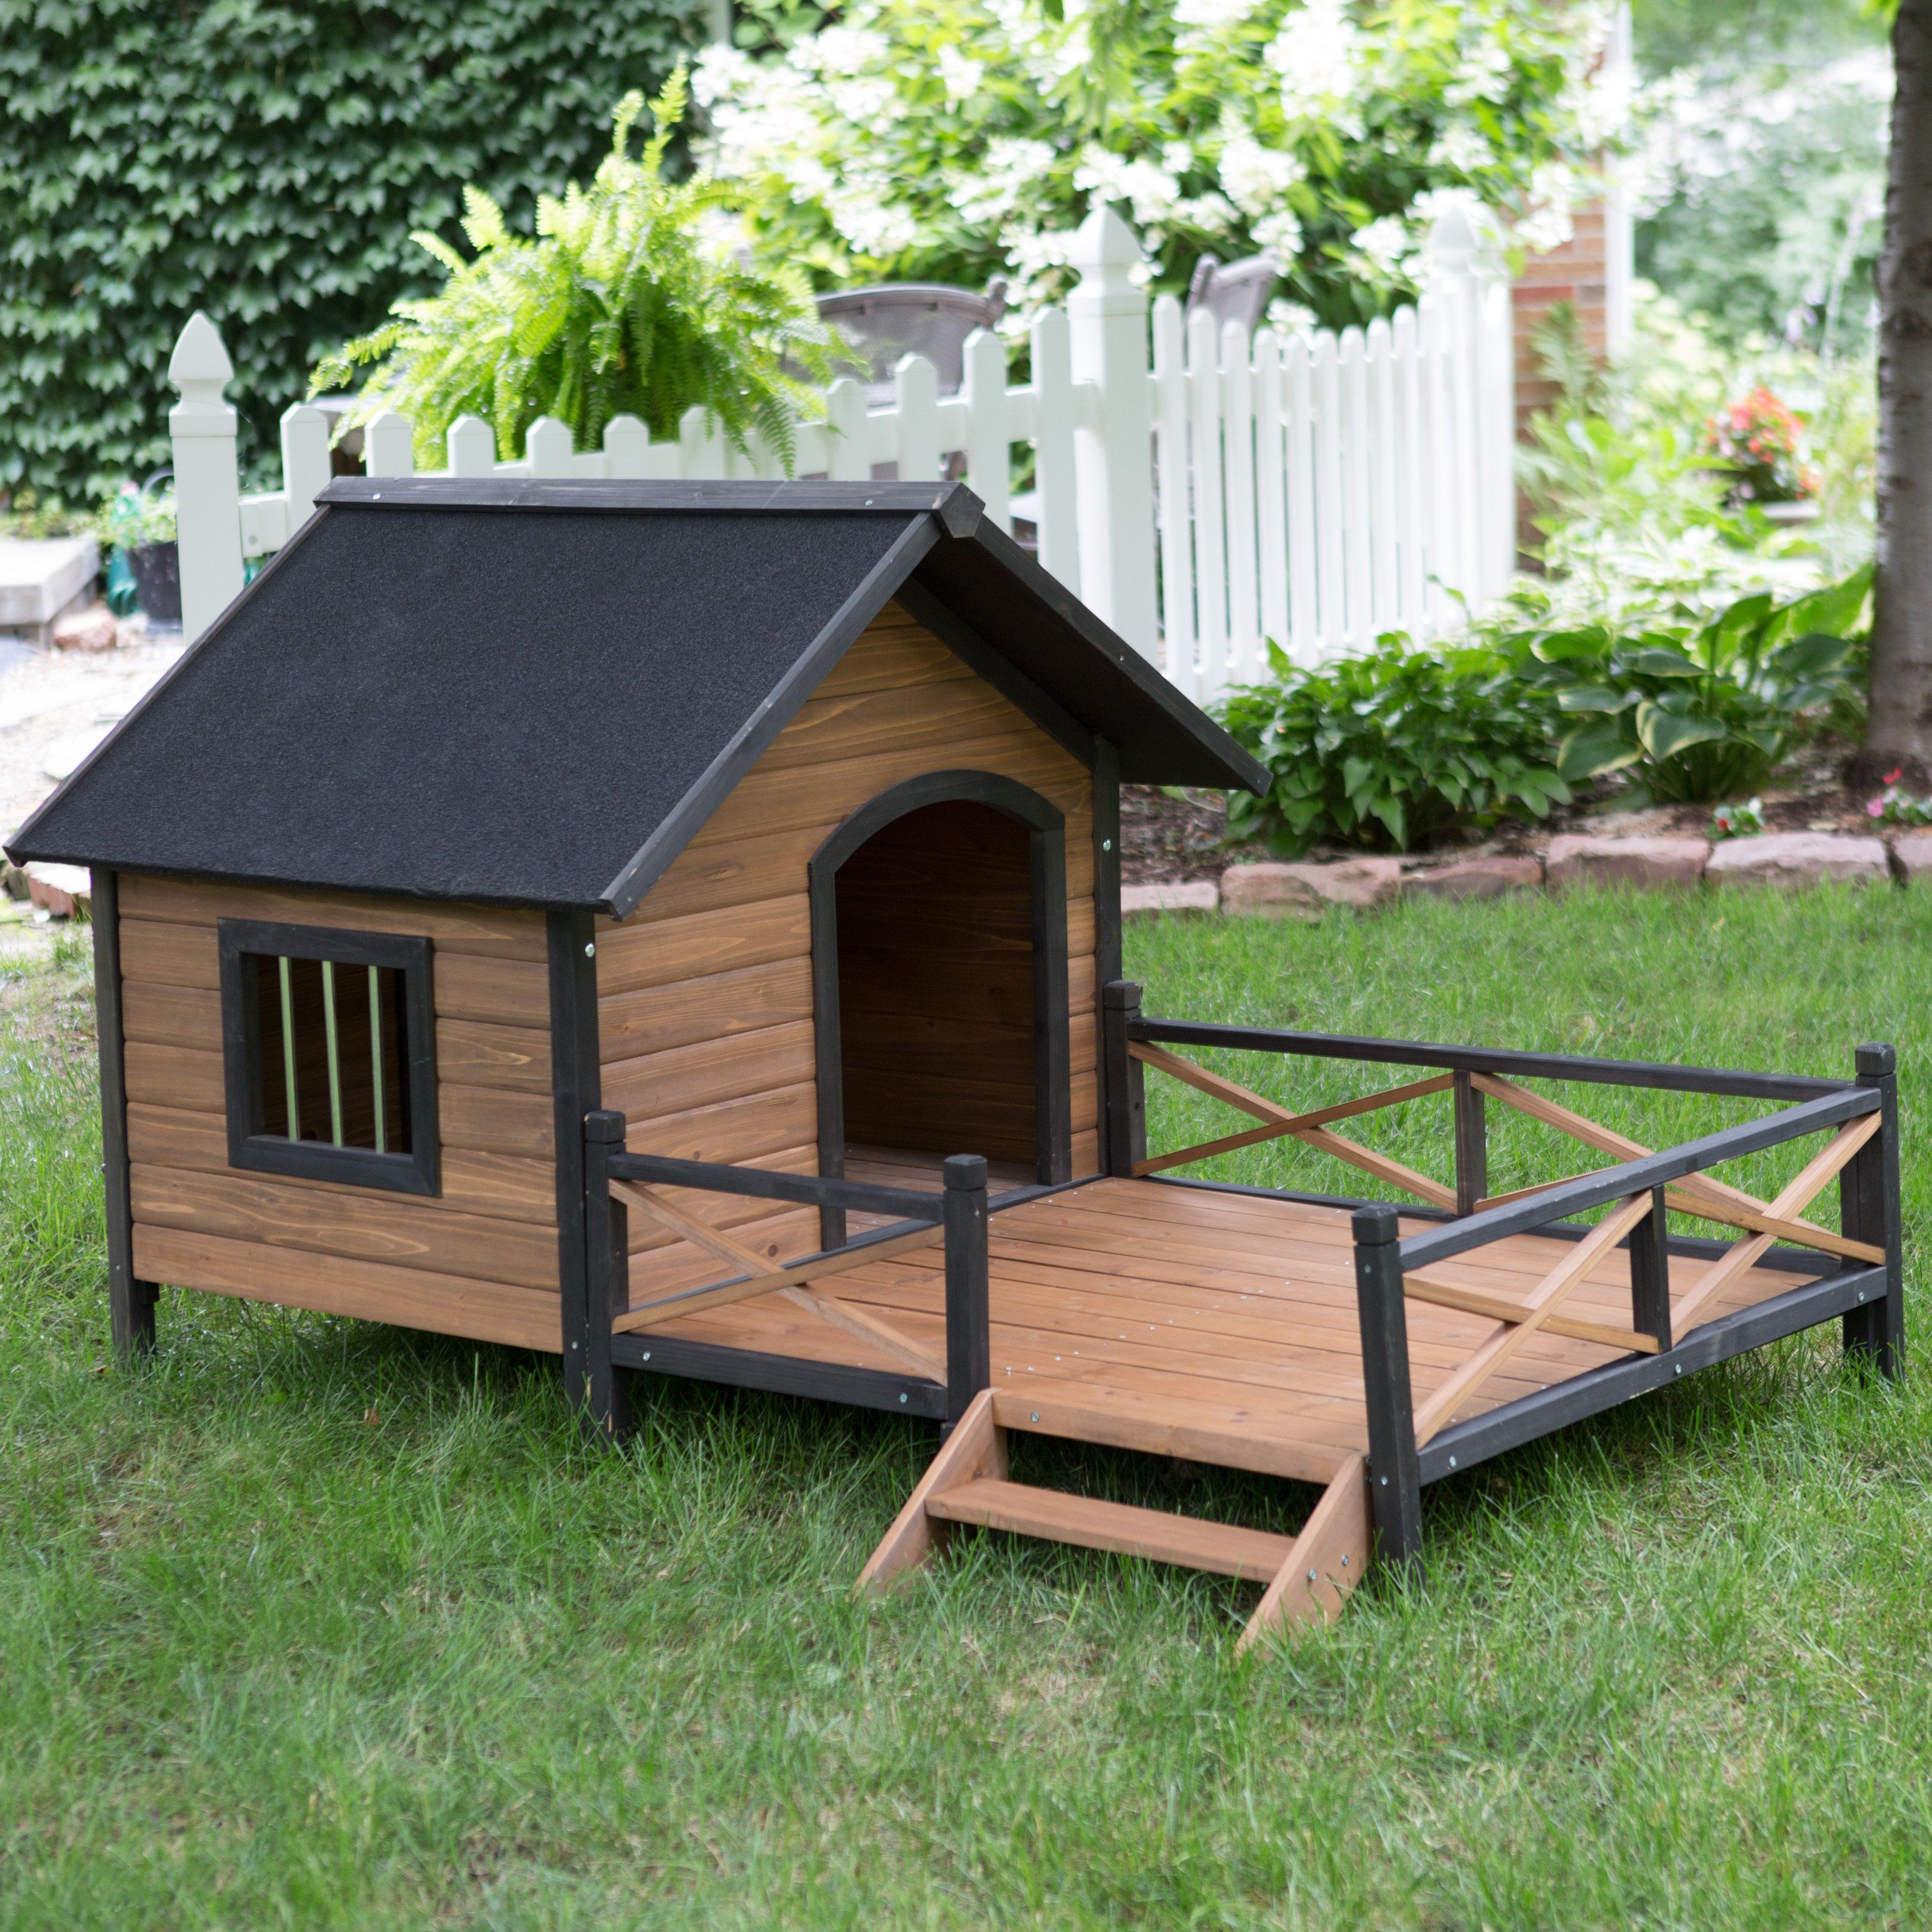 Boomer & George Lodge Dog House with Porch